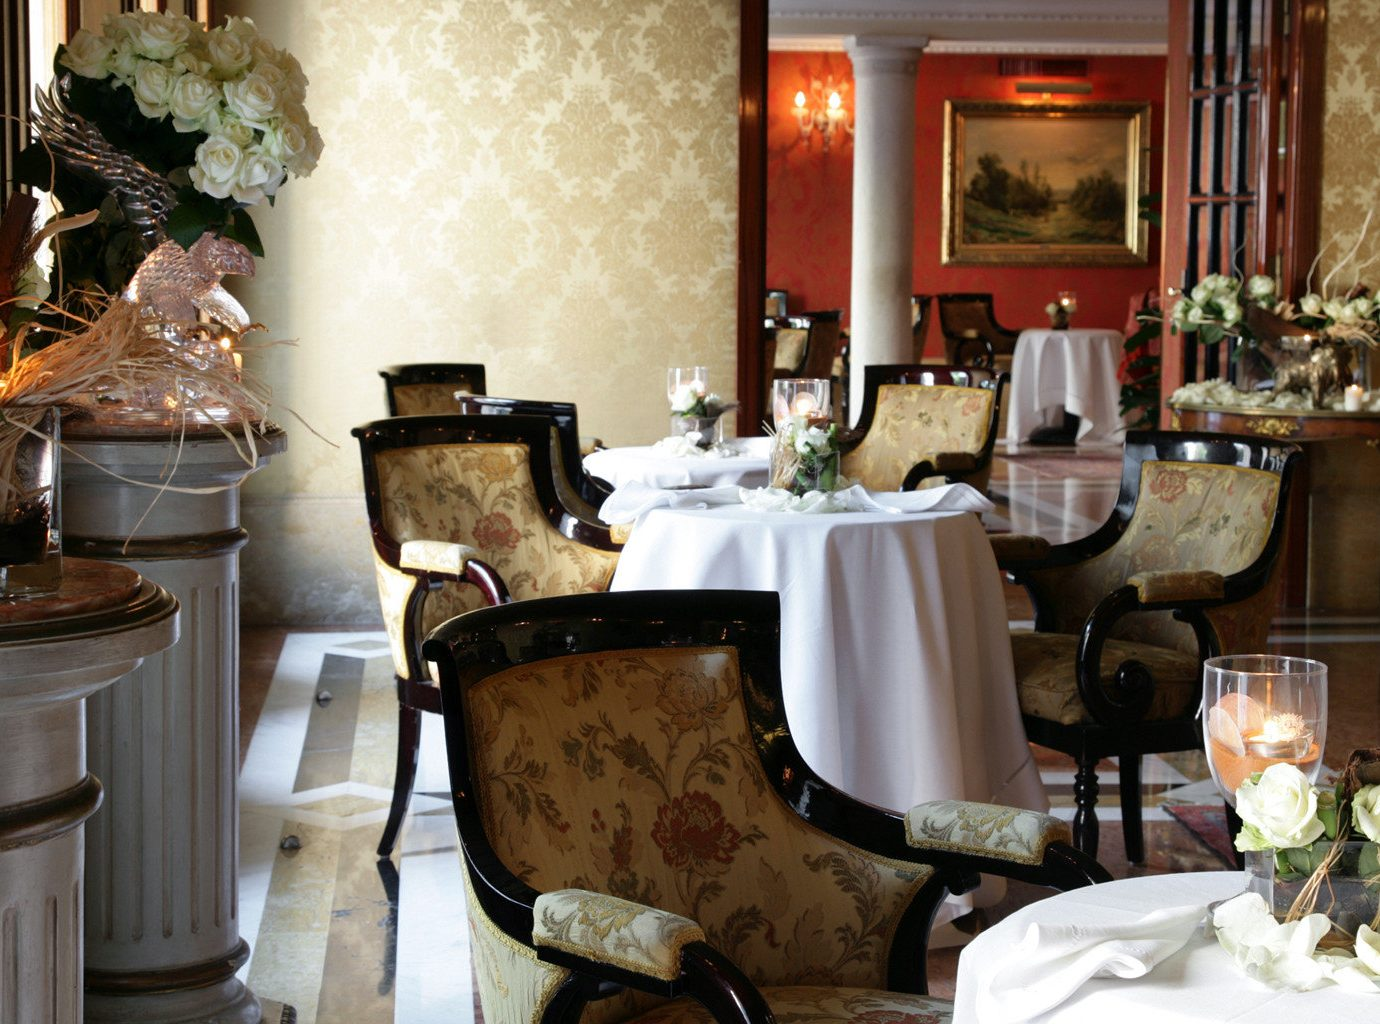 City Classic Dining Drink Eat Elegant Historic Hotels Italy Luxury Travel Romance Romantic Venice room dining room meal restaurant interior design home living room estate table